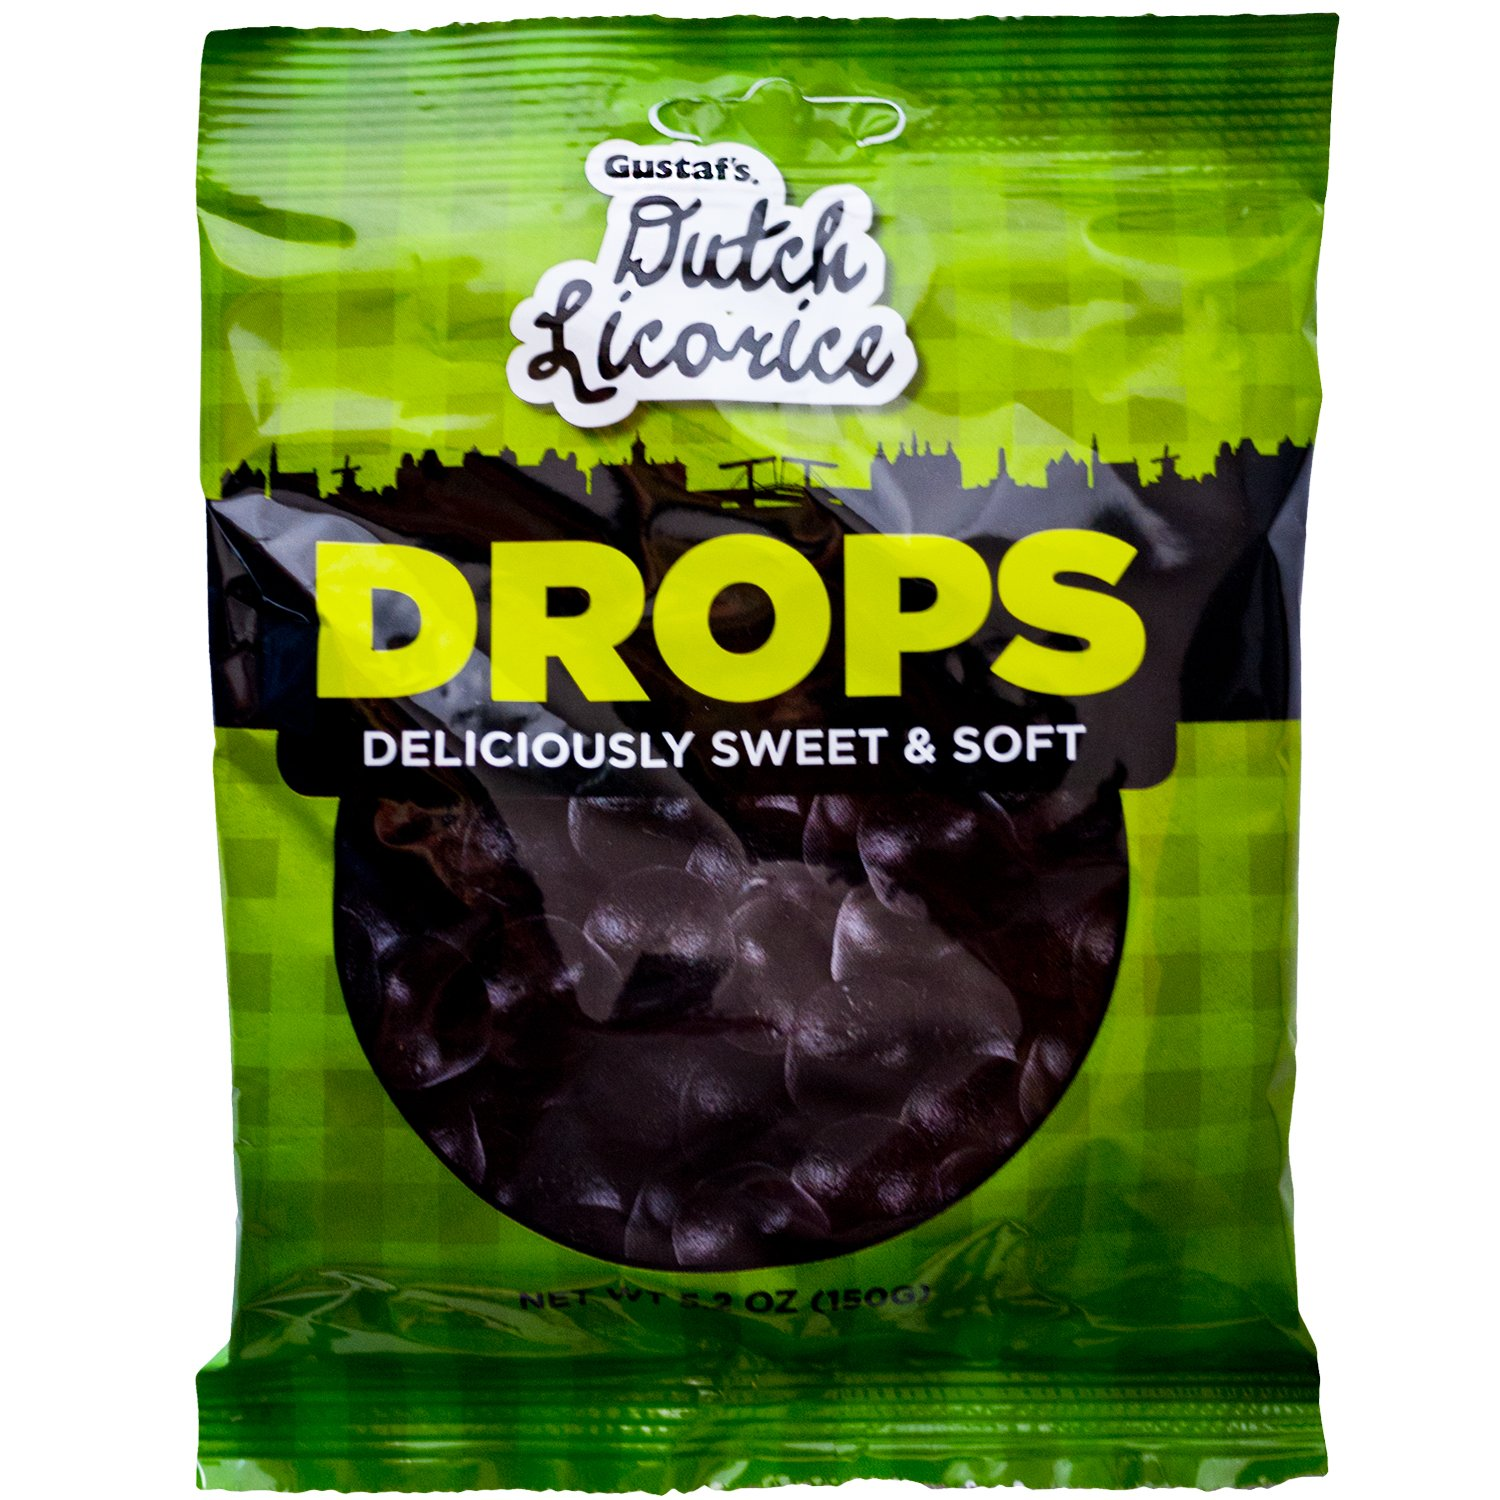 Gustaf's Dutch Licorice Drops, 5.2-Ounce Bags (Pack of 12)